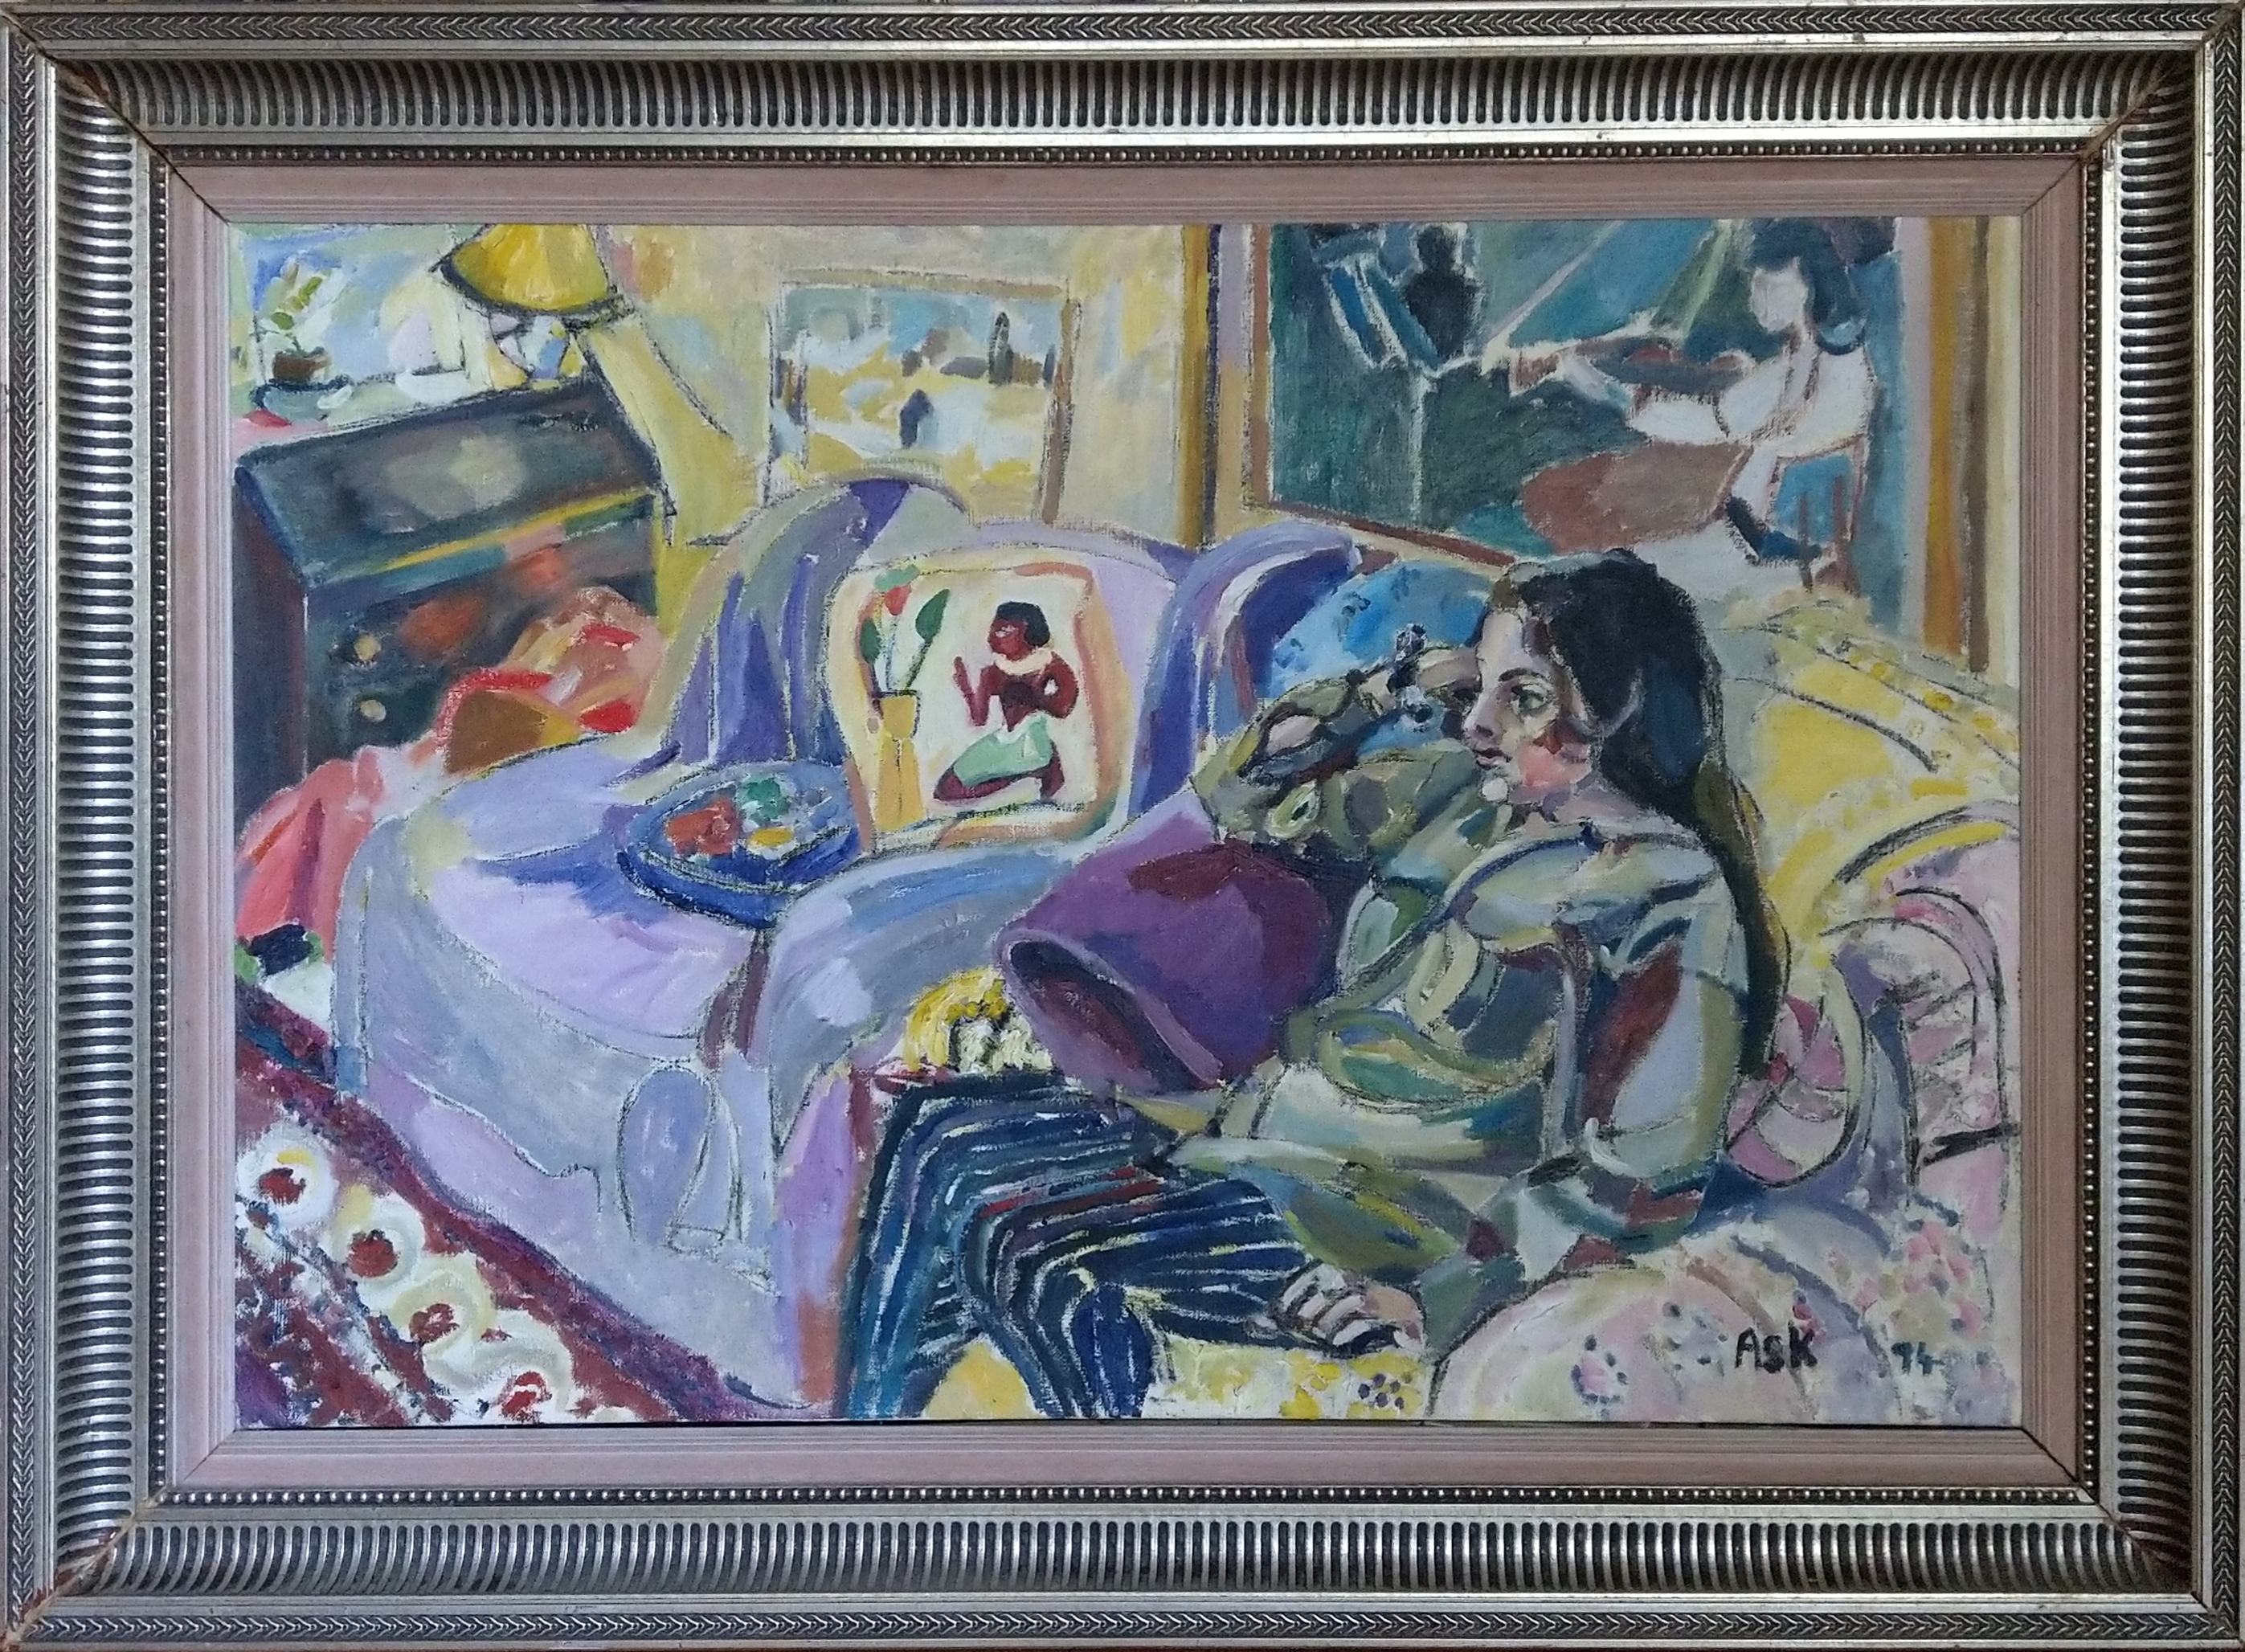 In this oil painting by Elaine Ask, Saskia sits in an armchair, staring at the TV, though you don't see the TV.